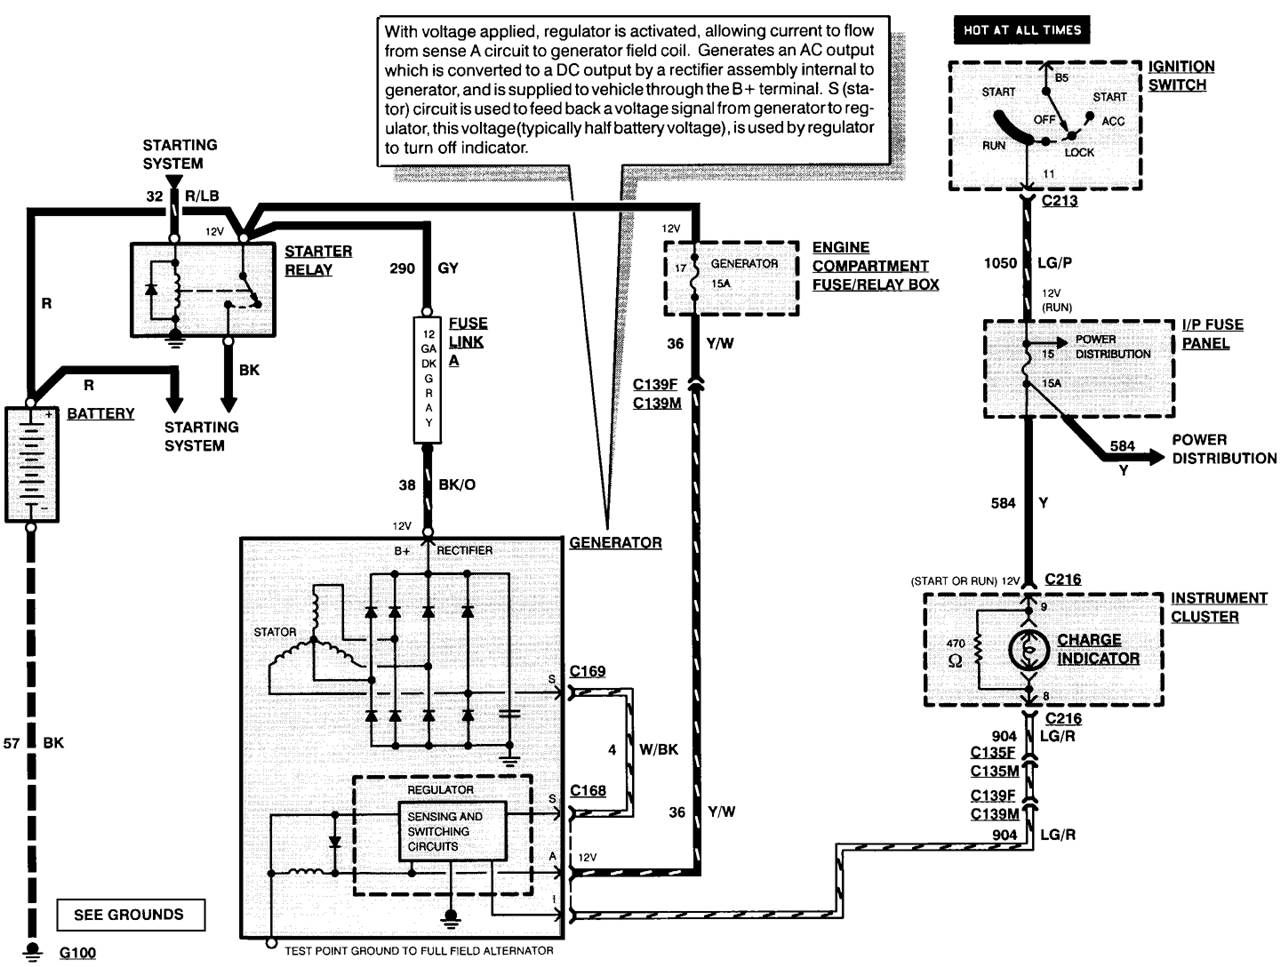 ford alternator wiring diagrams 1985 ford alternator wiring diagram ford 4g alternator wiring diagram carsut - understand cars and drive better